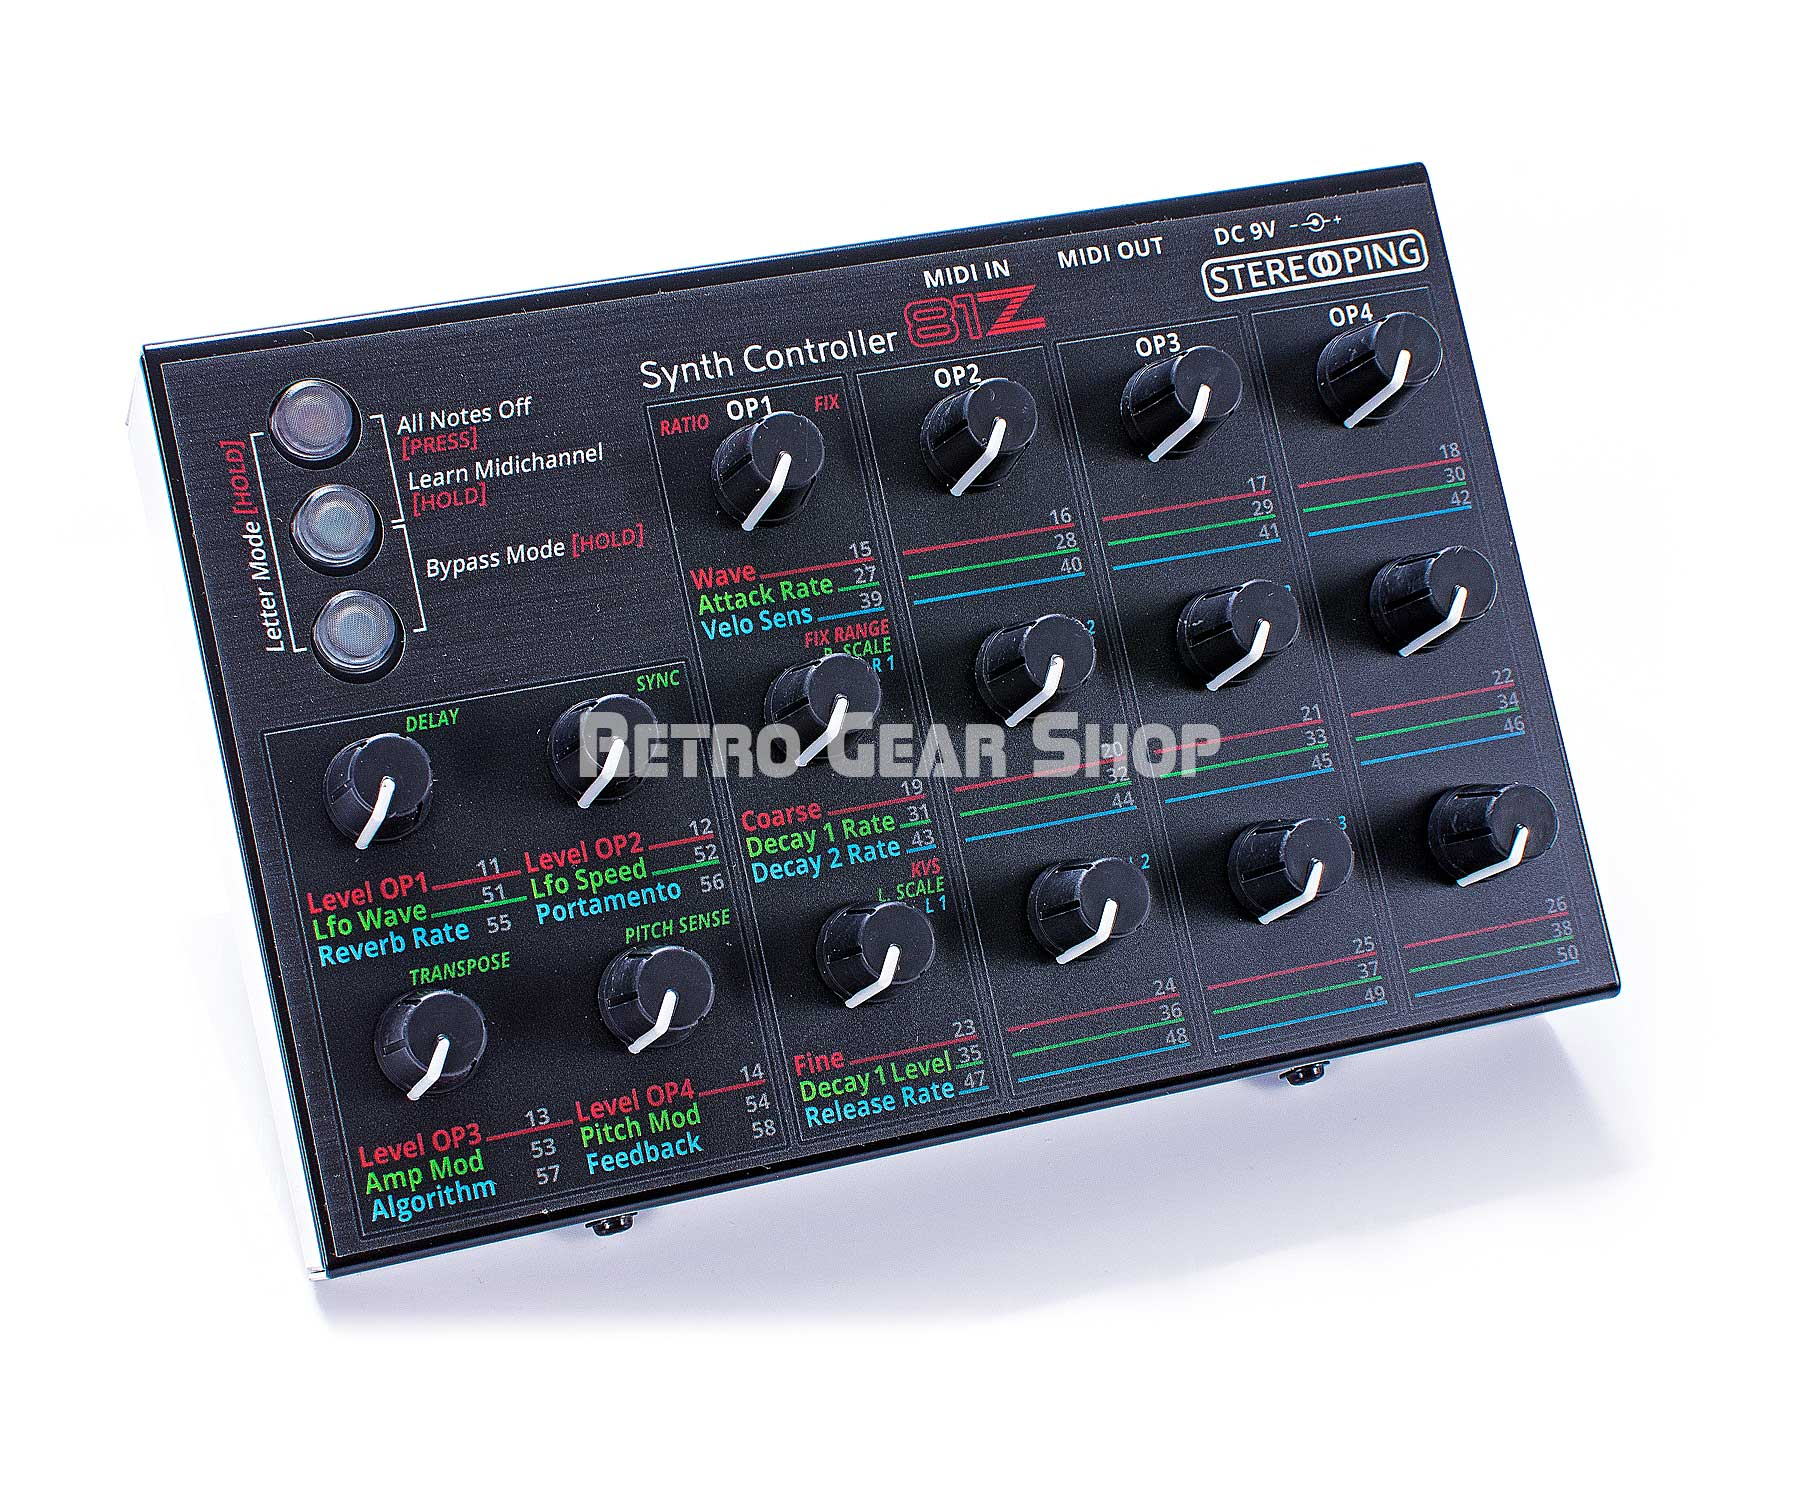 Stereoping CE-1 81Z Midi Controller for Yamaha TX81Z Top Left